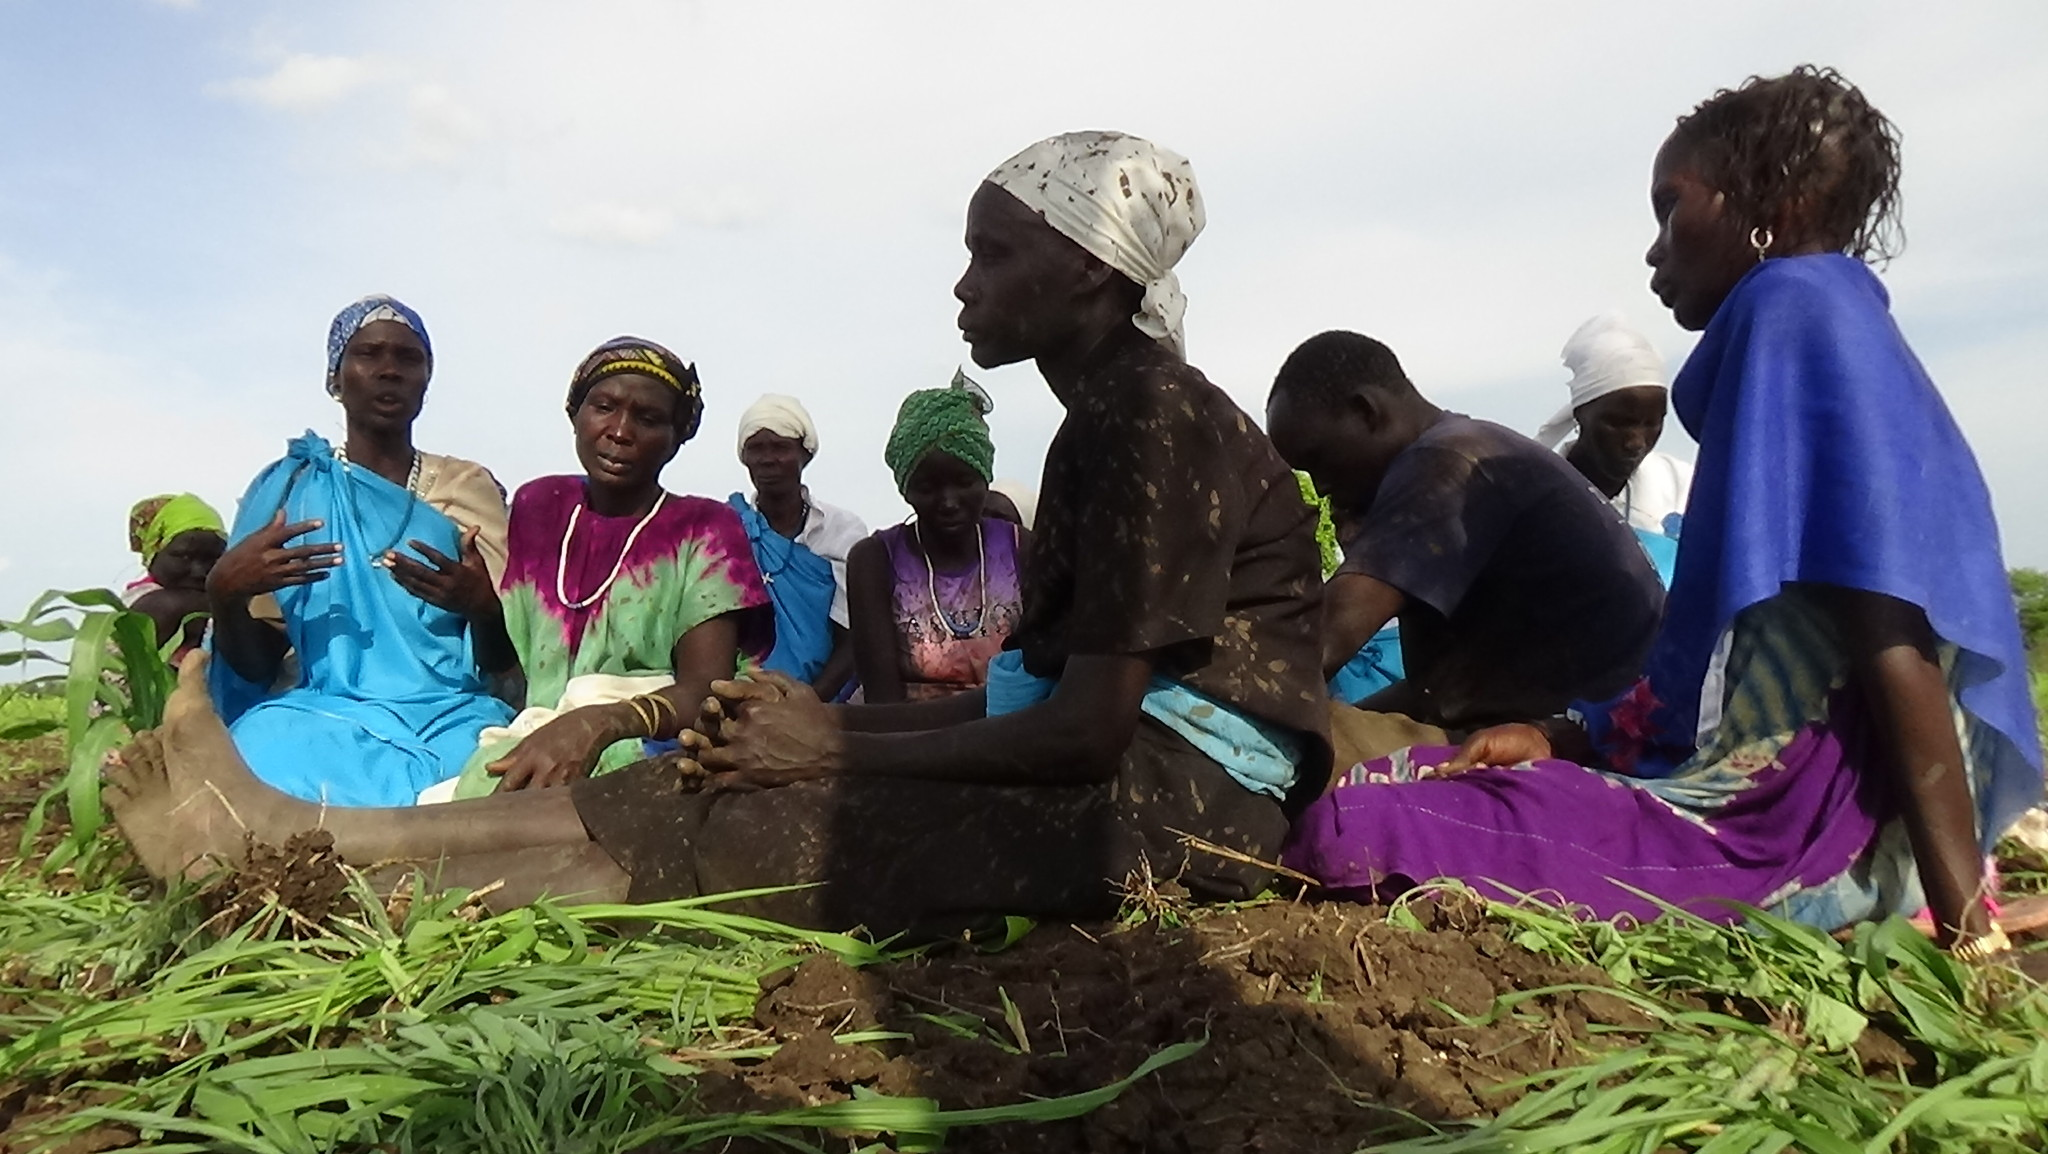 As chairwoman of the PCOSS Women in Pochalla, Mrs. Akwata Obang Okello (far left) shares the larger vision behind the Pochalla women's agricultural project.